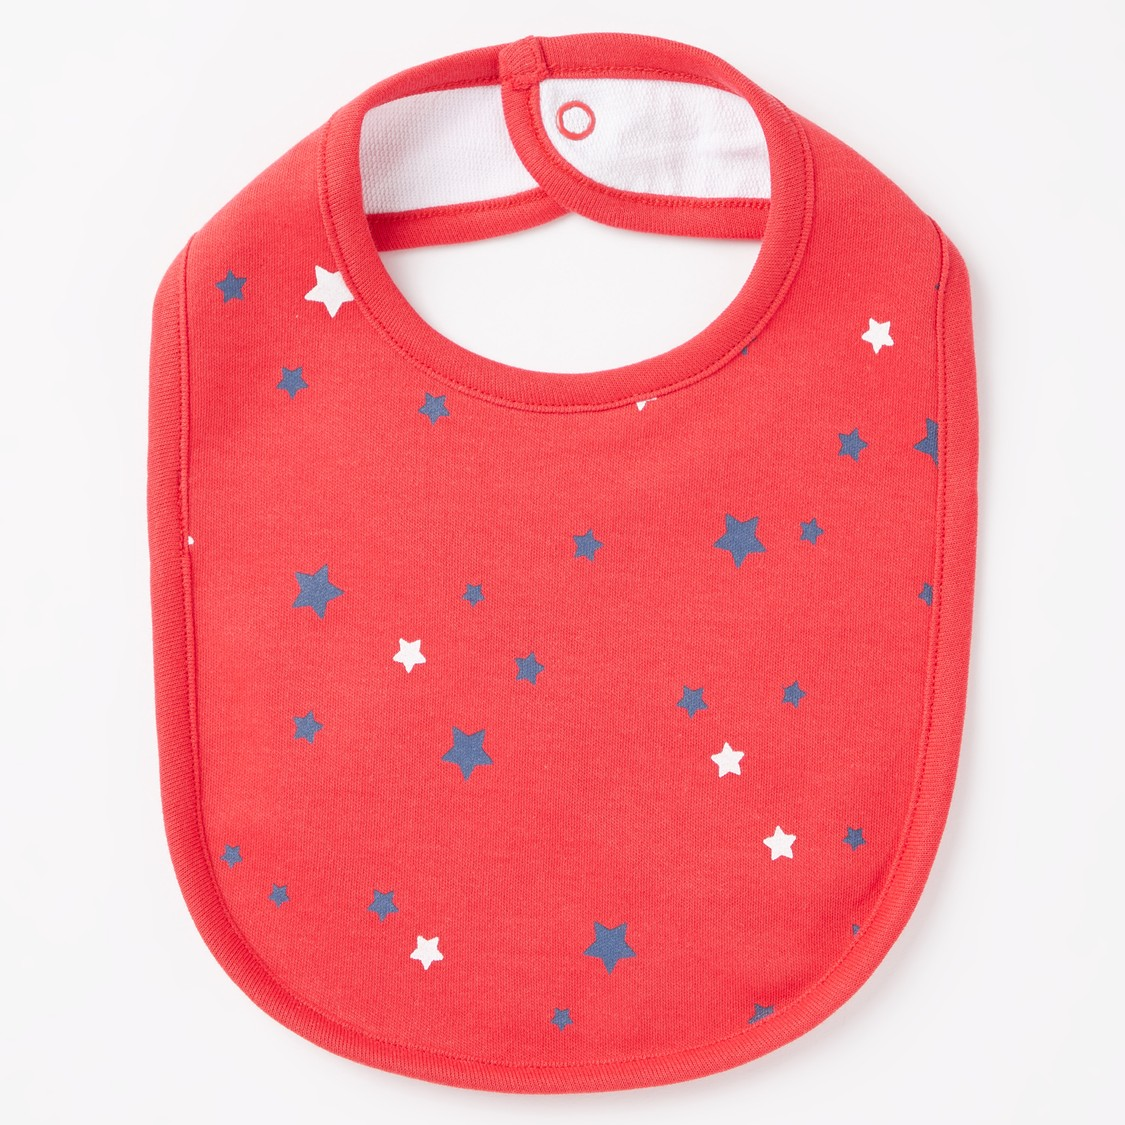 Set of 3 - Printed Bib Set with Snap Button Closure